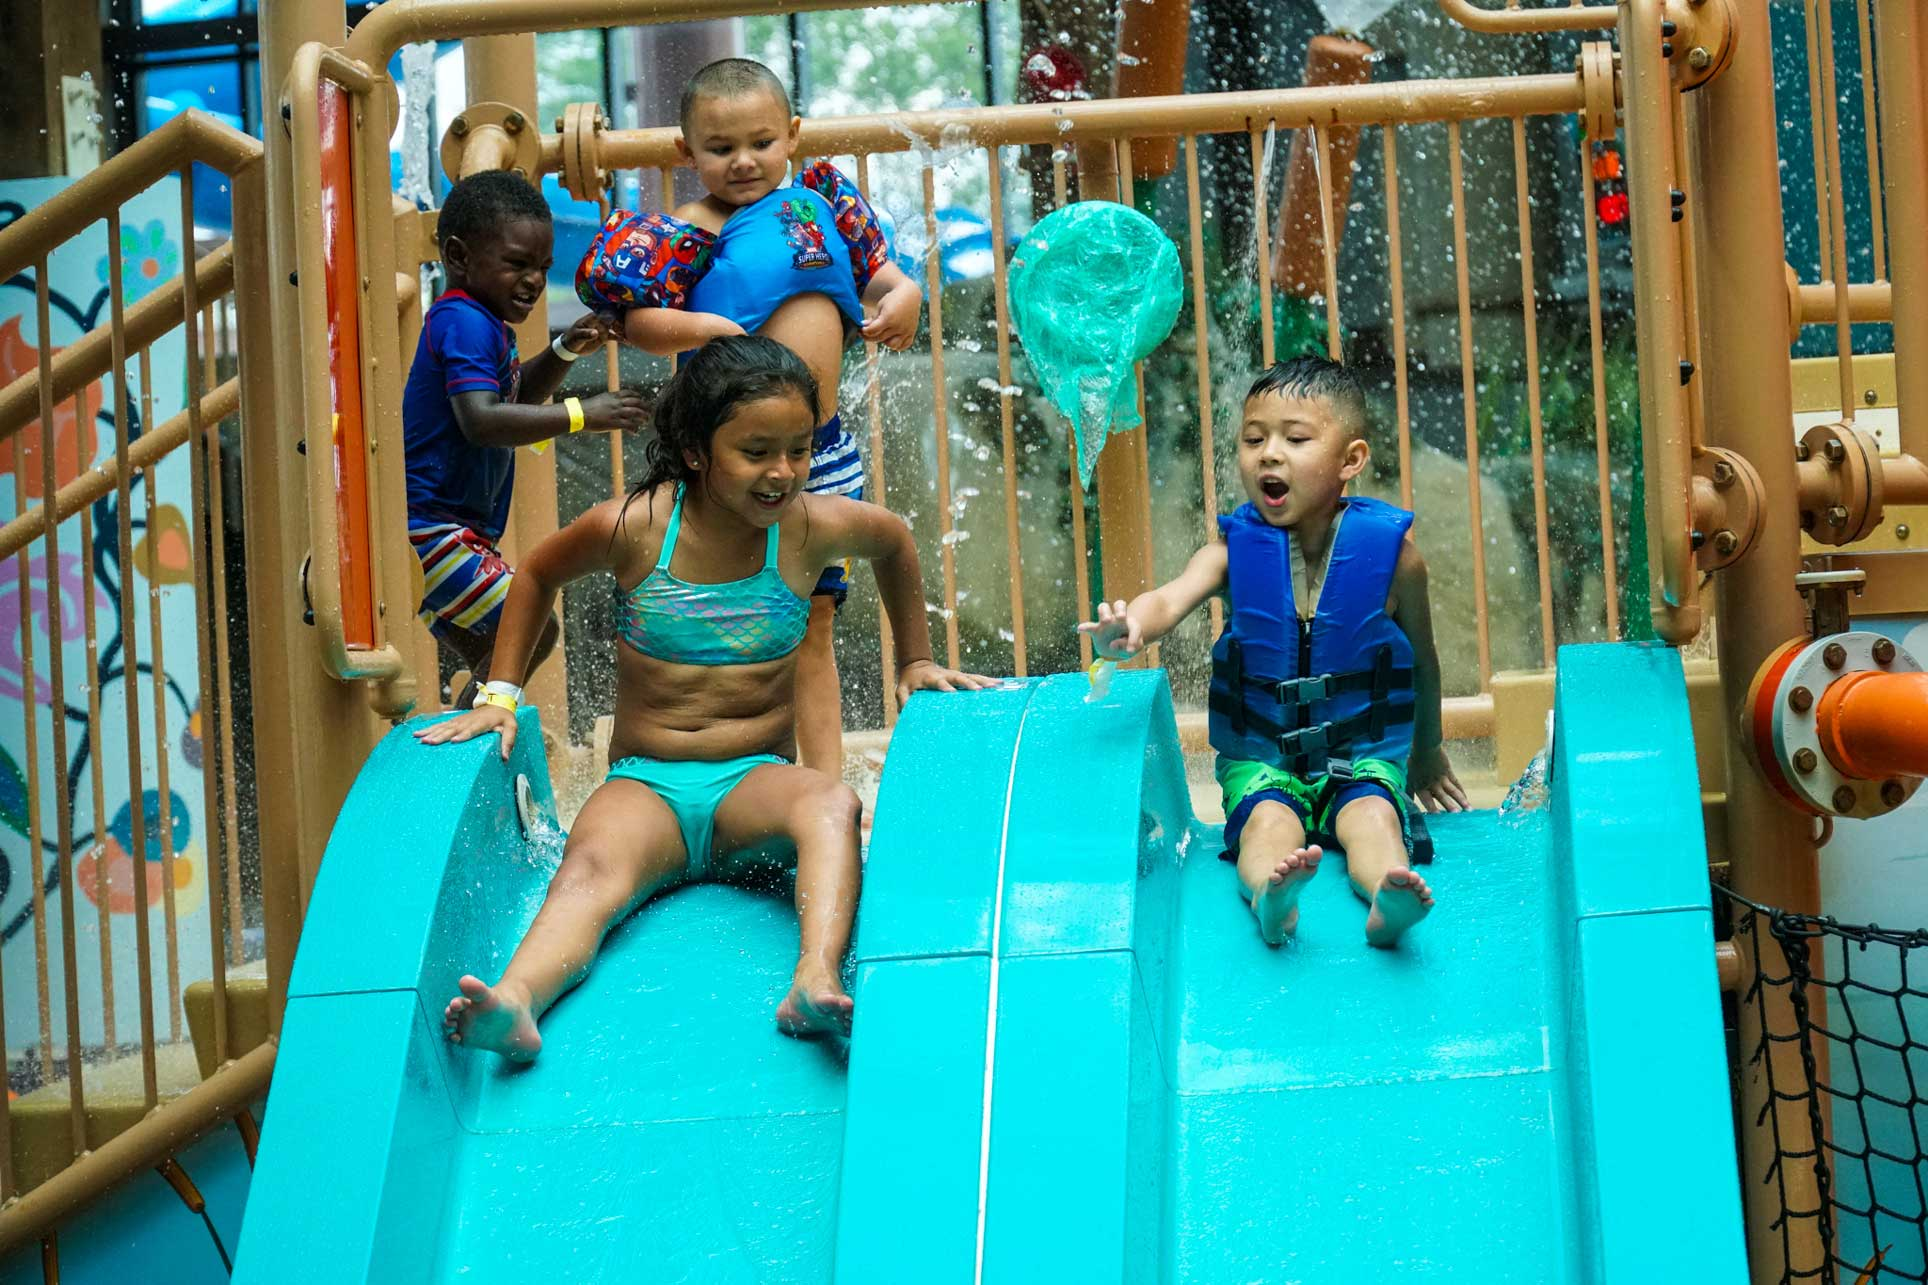 Soaring Eagle kids on slide